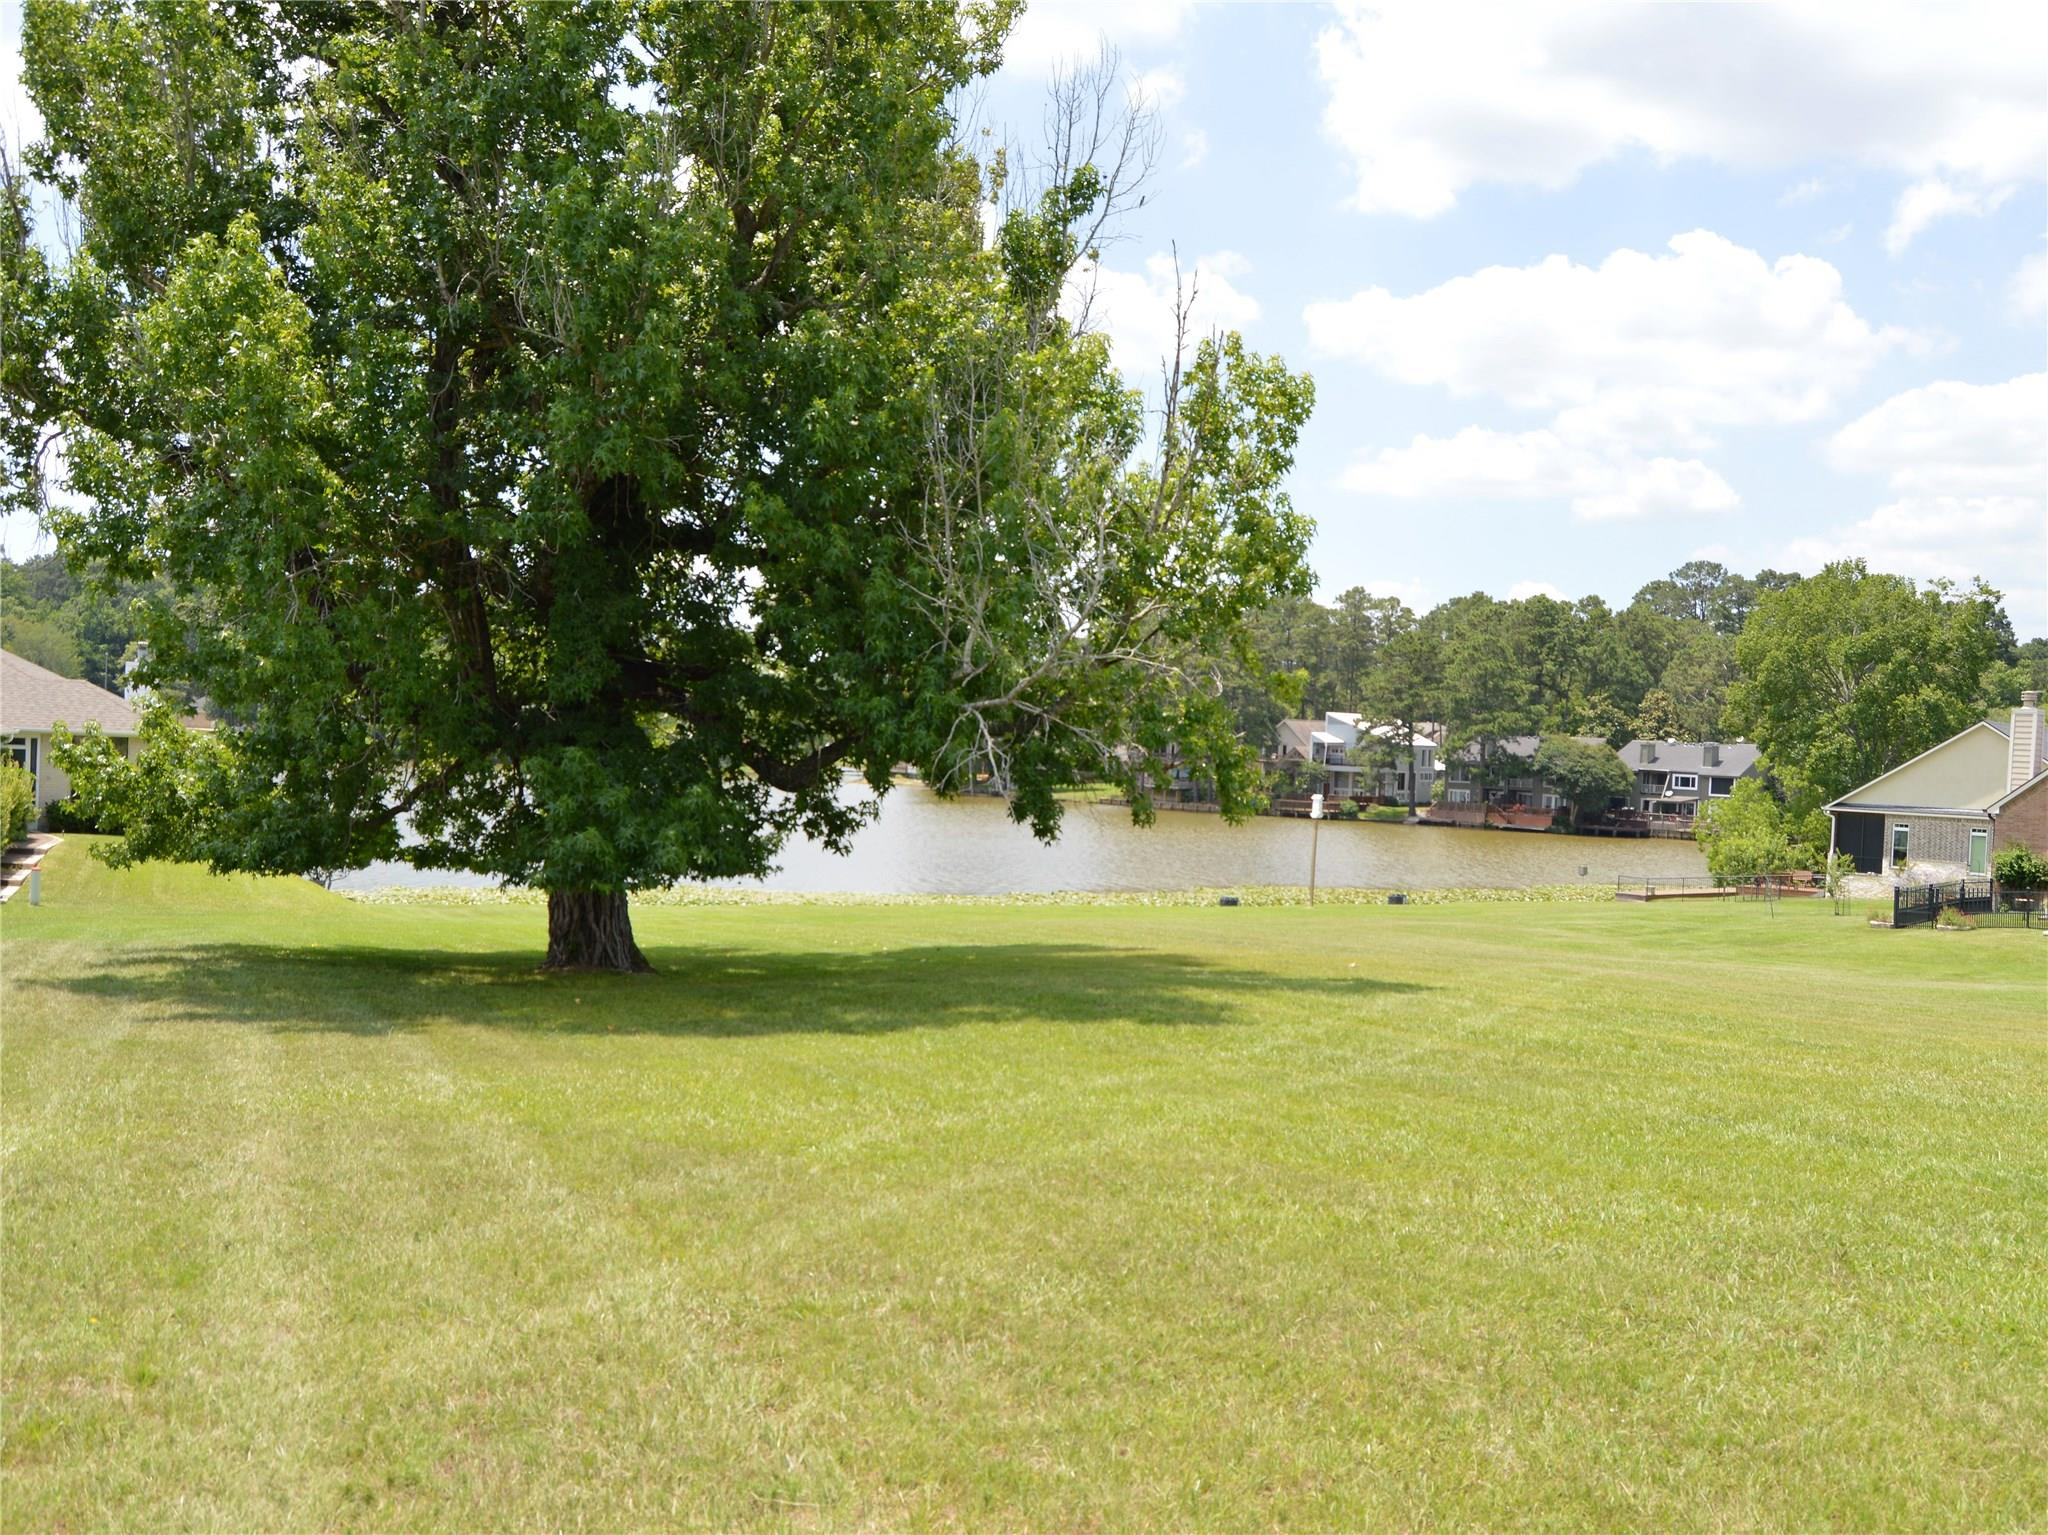 Tbd-14 Waters Edge At 18th Property Photo